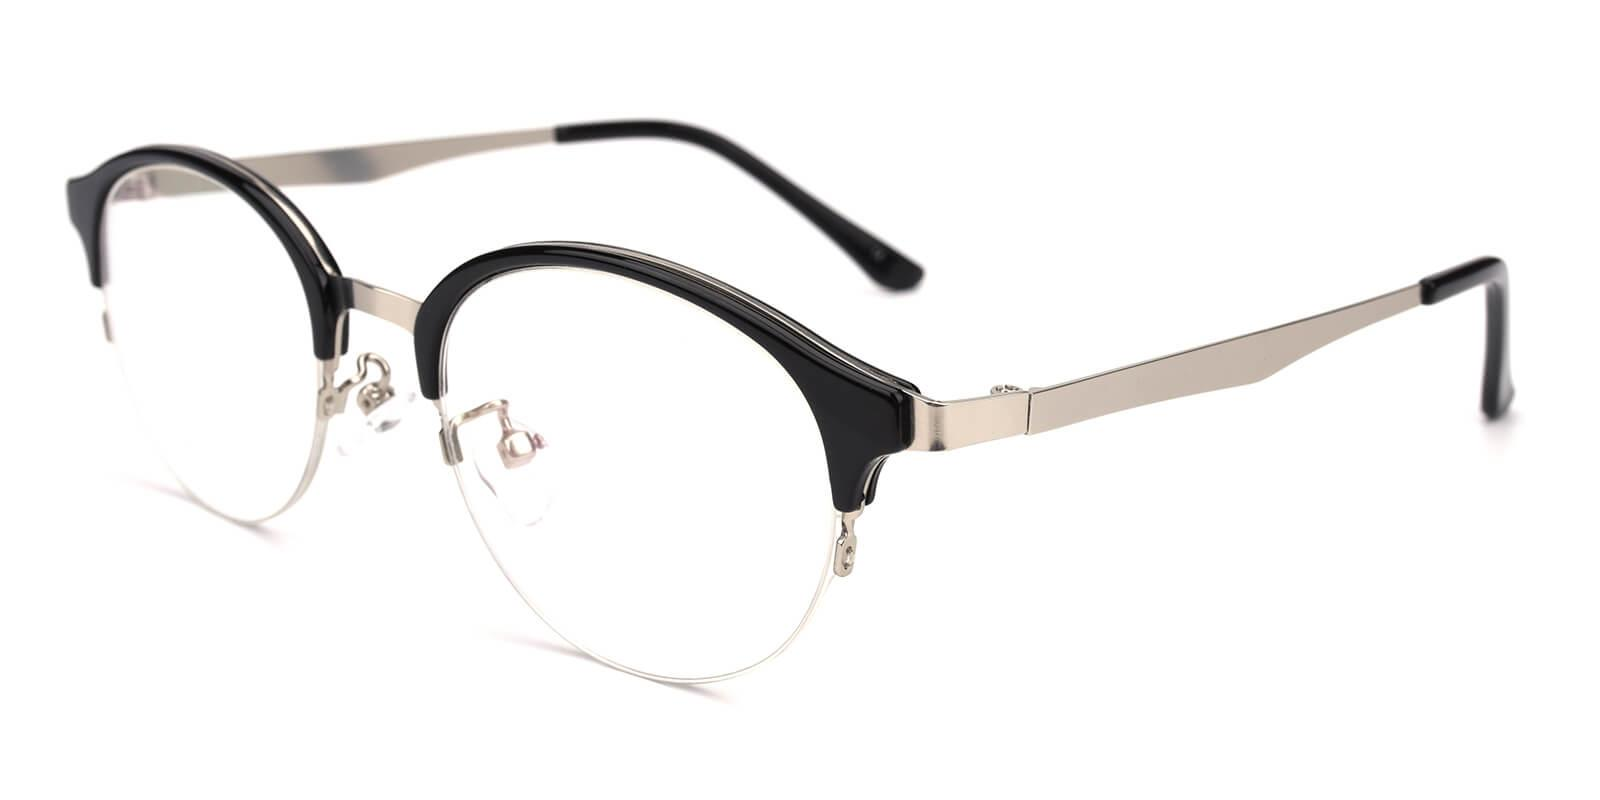 Akaaro-Black-Oval-Metal-Eyeglasses-additional1